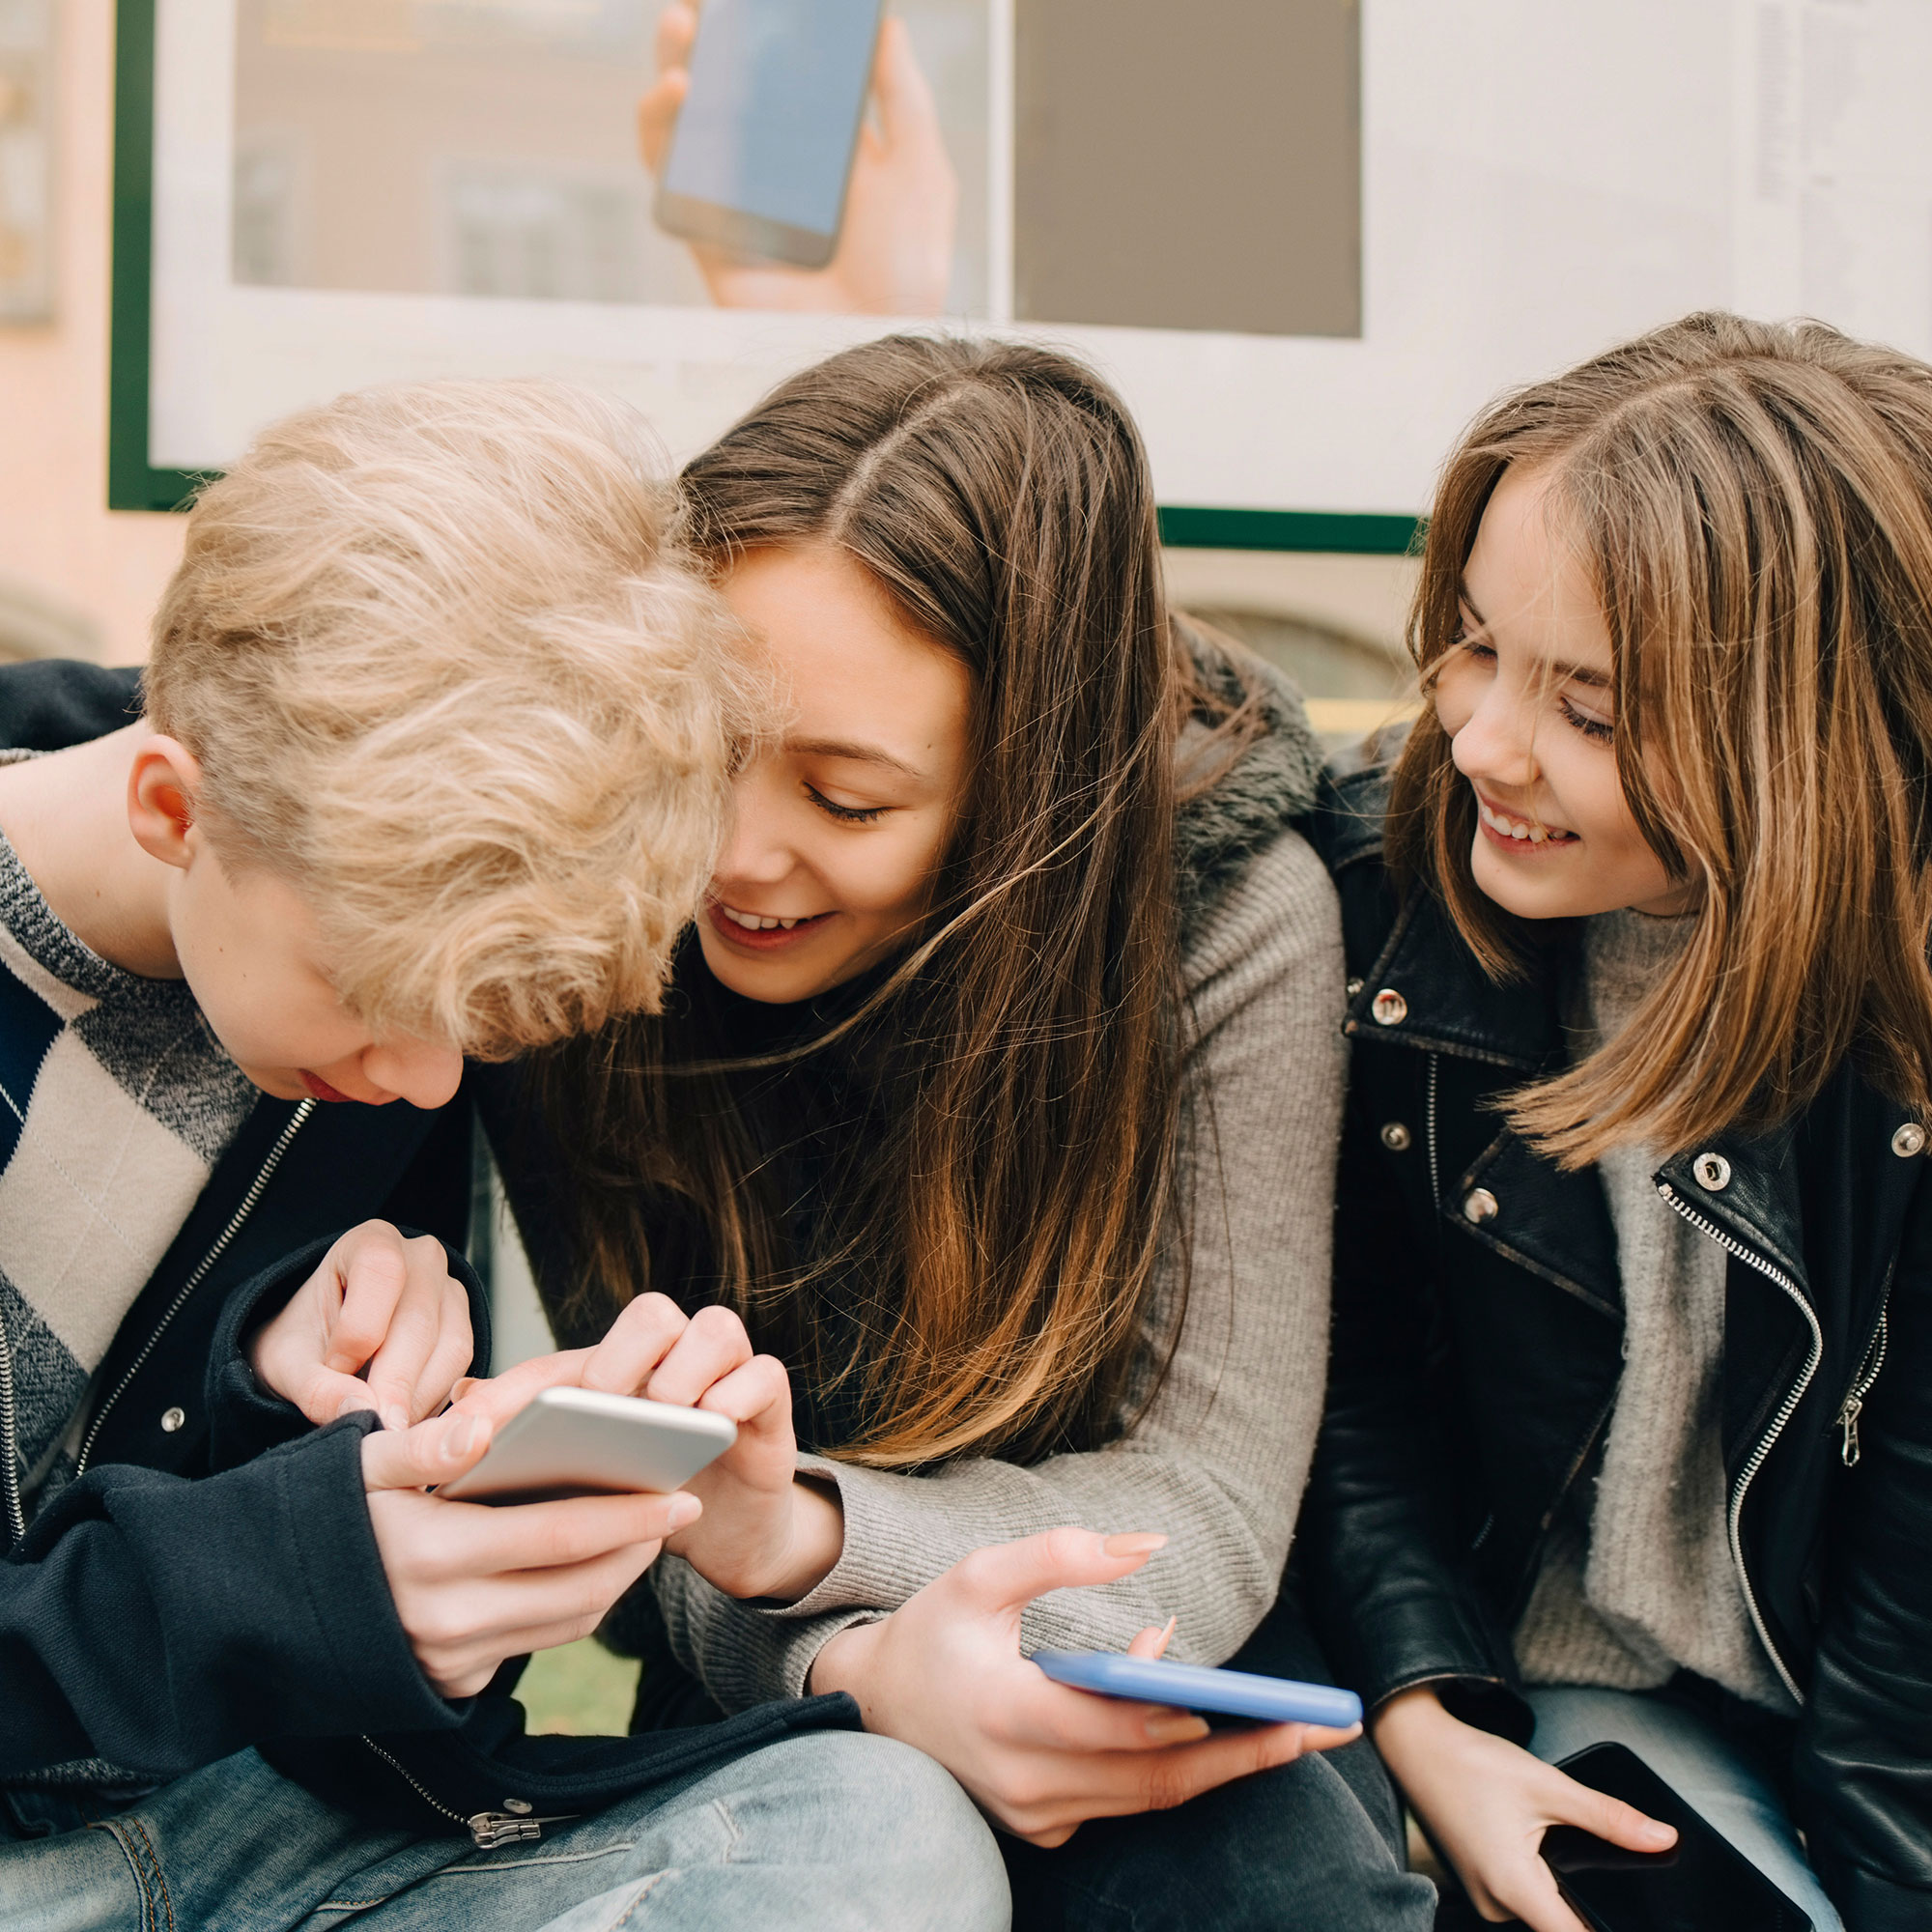 Youths at a bus stop looking at mobile.